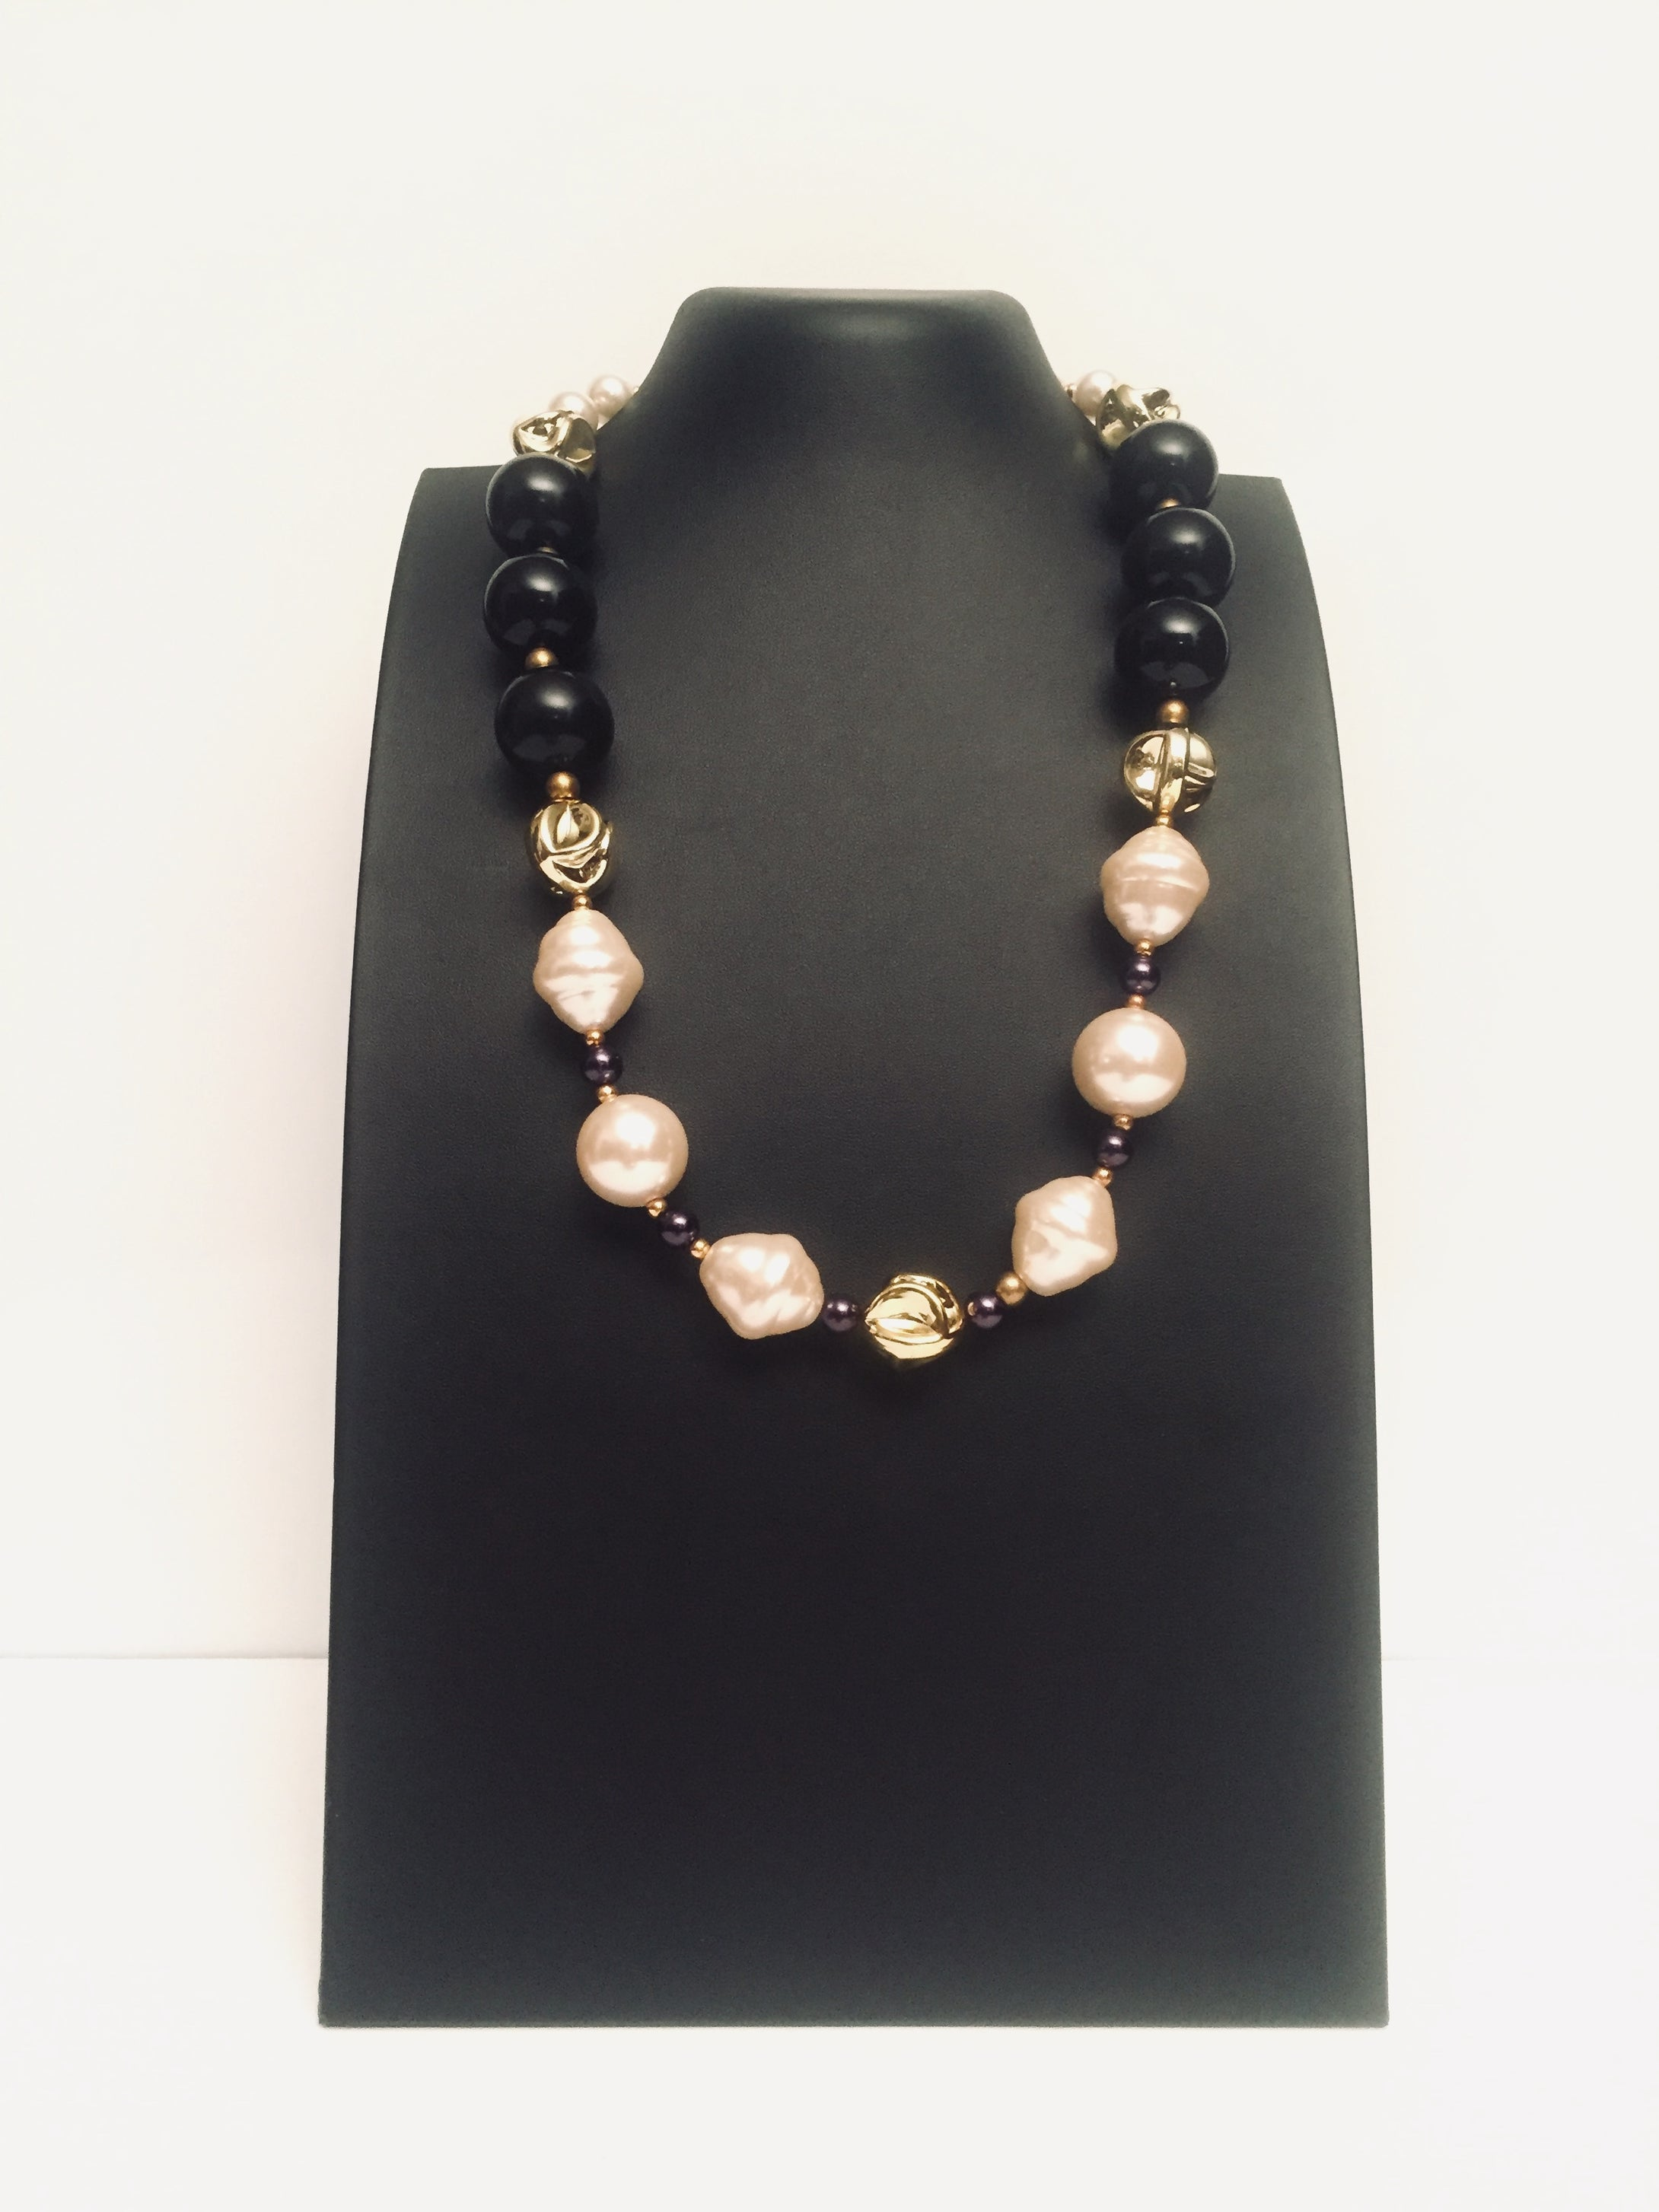 Black Tulip -a stunning black and  outsize  pearl necklace design with gold  tone